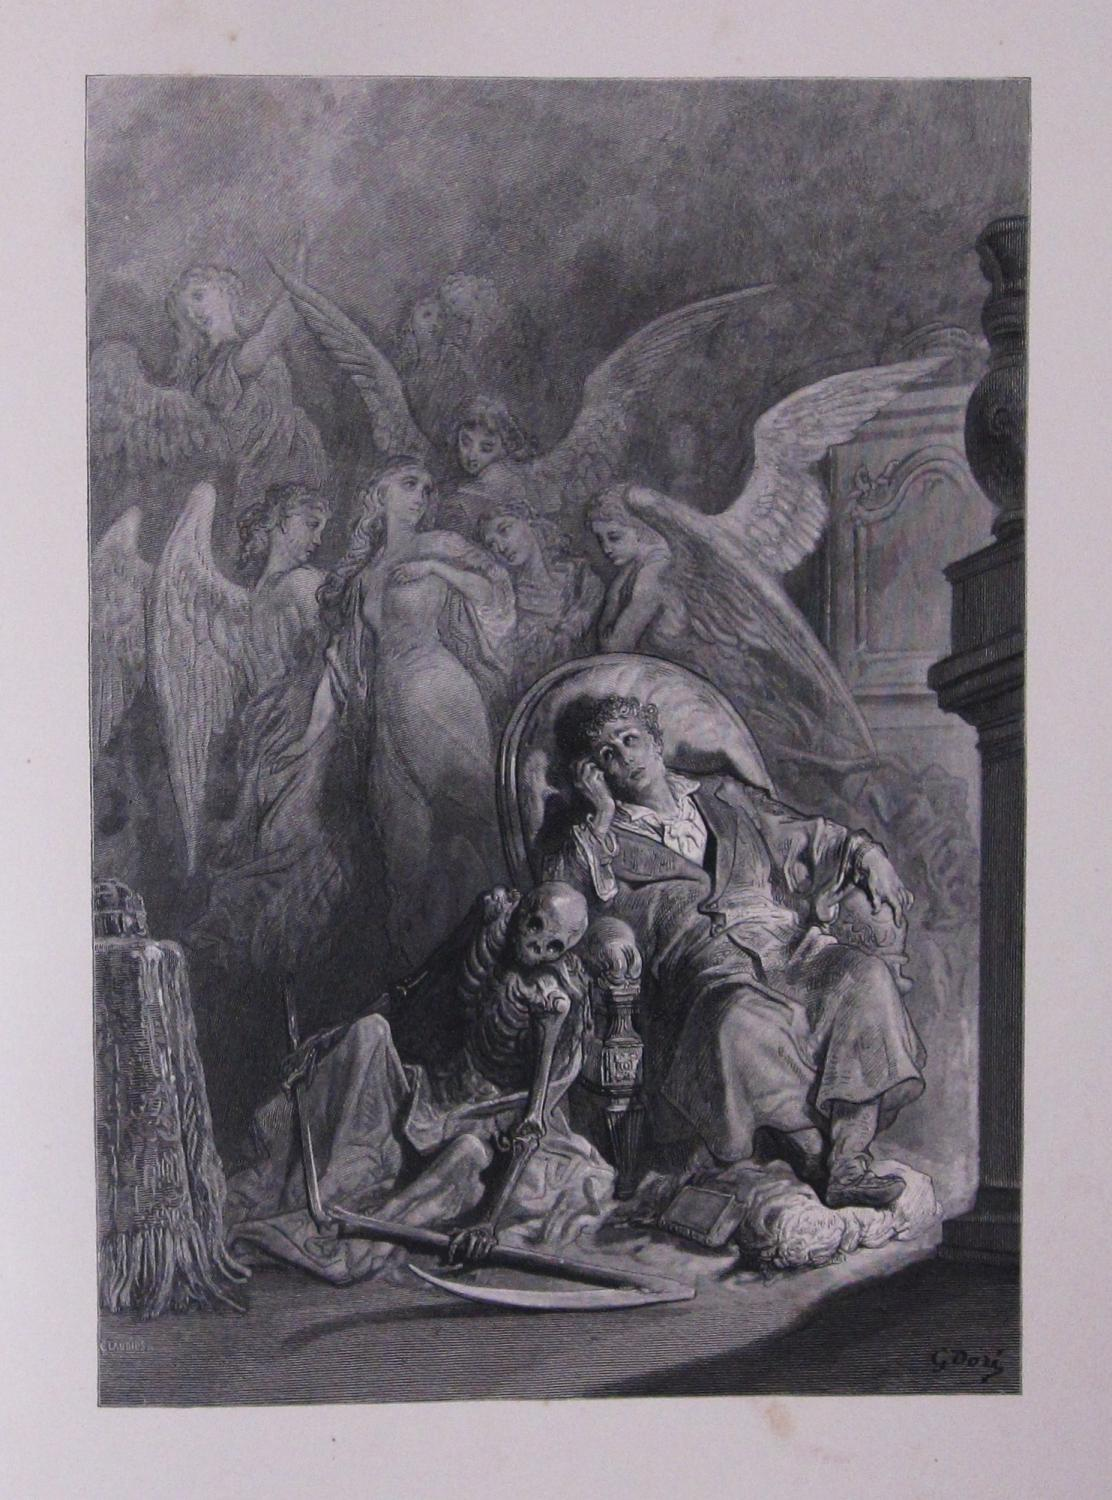 The Raven Illustrated By Gustave Dore By Poe Edgar Allan